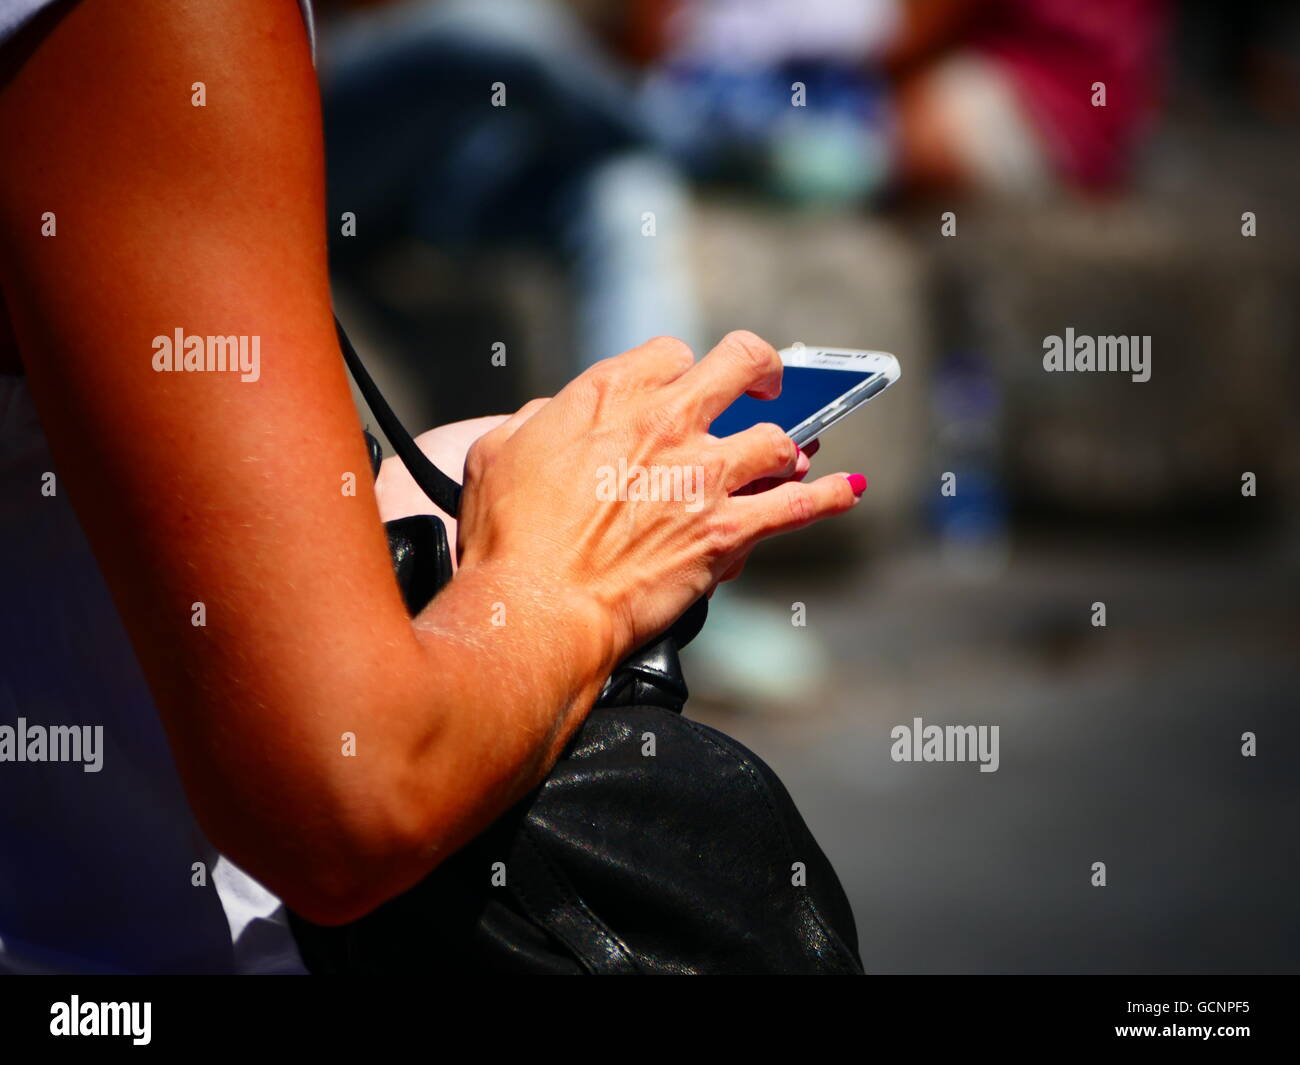 Lady Woman checking SMS email on smartphone iPhone - Stock Image